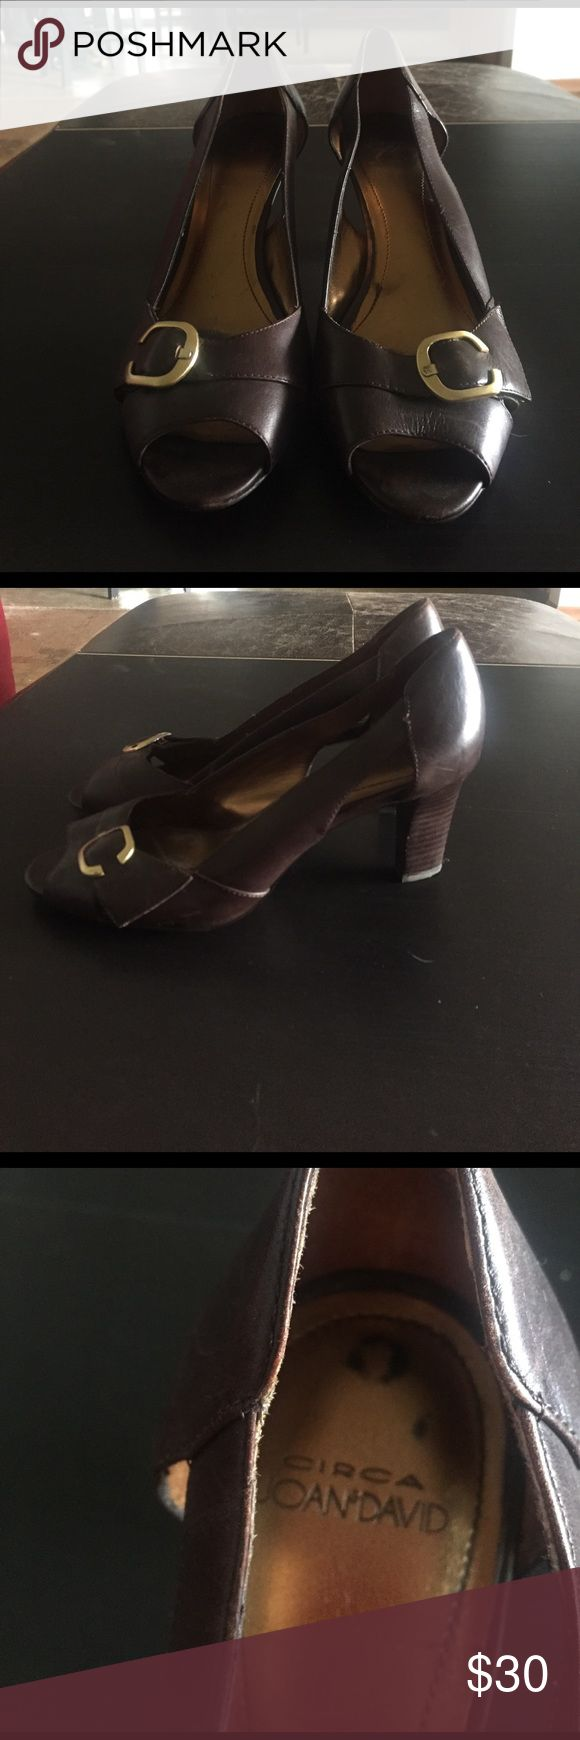 Circa Joan& David brown leather open toe pumps Dark brown leather Marisa pump from Circa Joan & David size 7m. Gold buckle on the toe, heel height is 2 1/2 inches, heel is sturdy and comfortable to wear. Great for business. Worn once for a meeting, like new inside of the insole has markings from where the gold paint wore off after first wear. Joan & David Shoes Heels